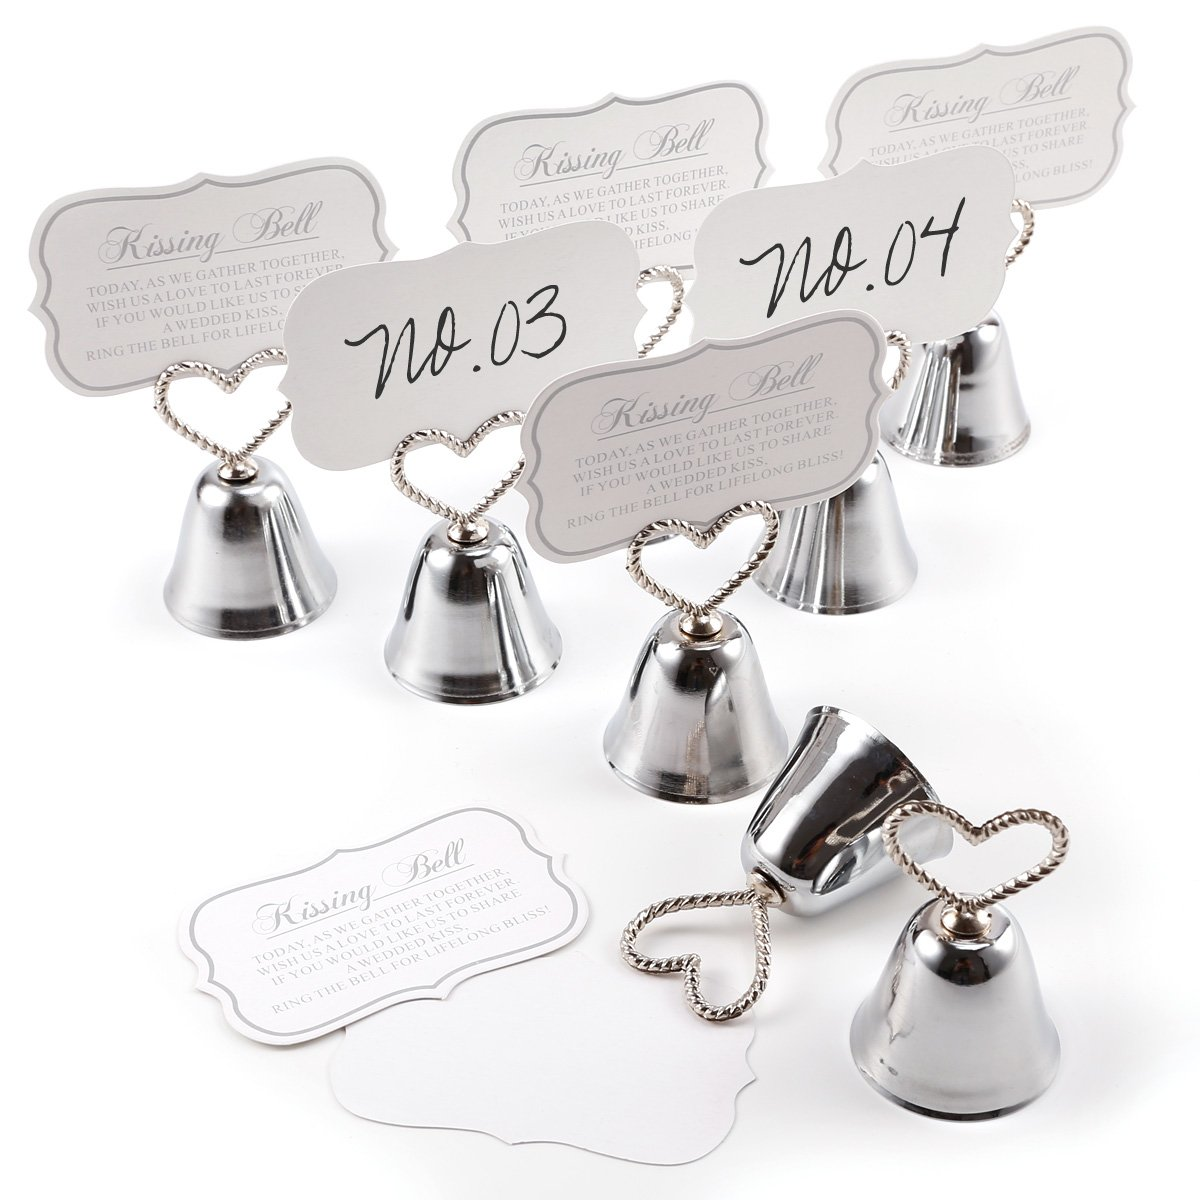 Surepromise 8 Place Card Love Holders Wedding Cafes Table Photo Memo Number Name Clip